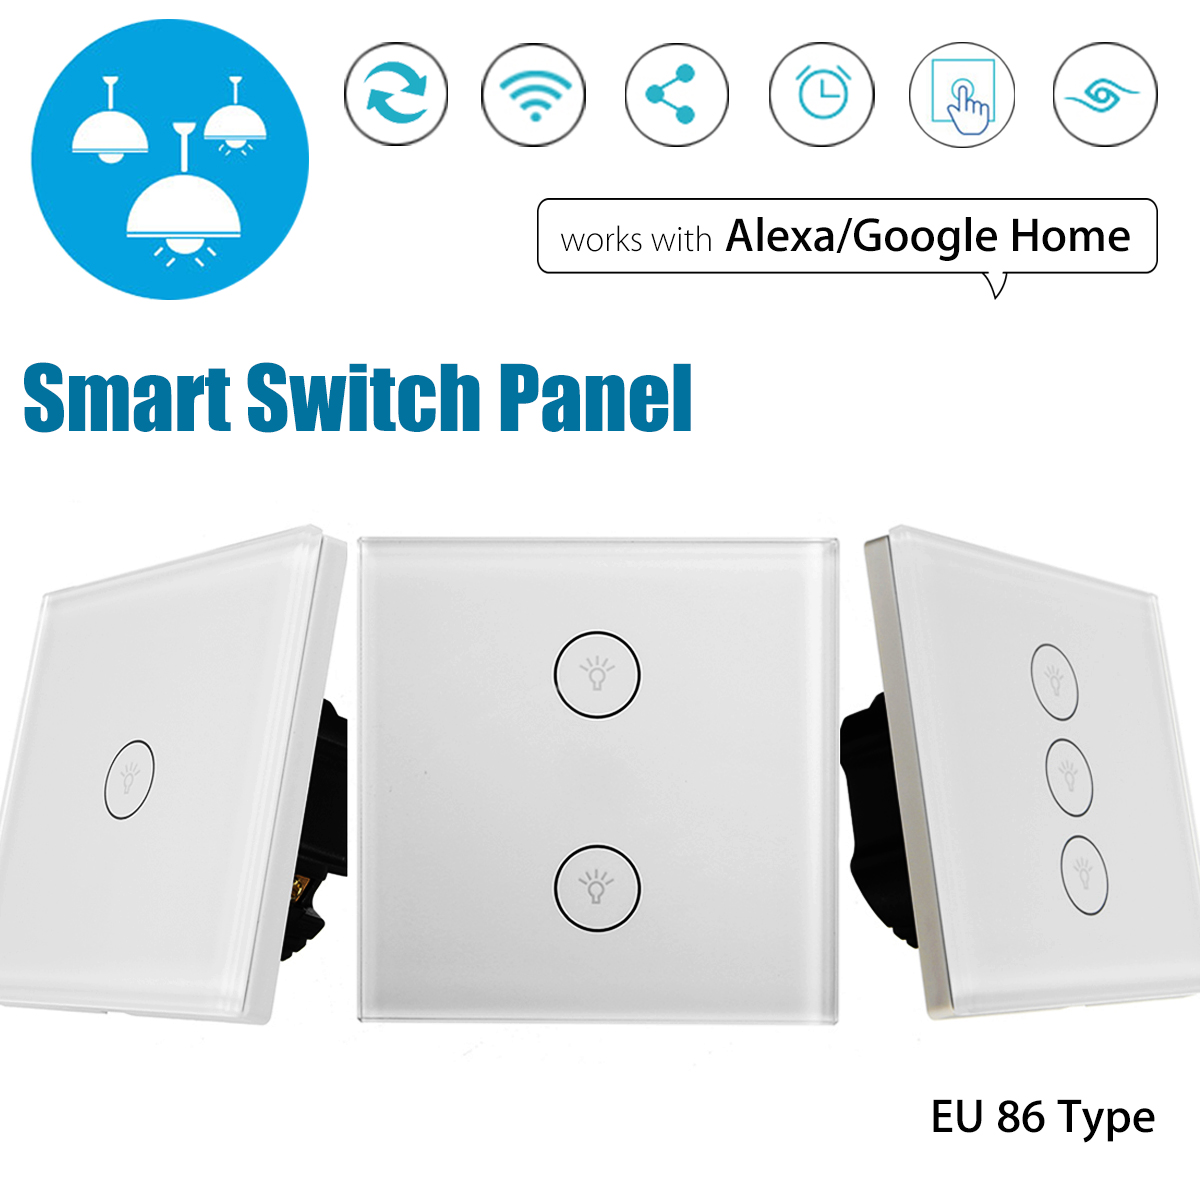 SWILET EU WIFI Smart Touch Switch APP Wireless Remote Touch Control Light Wall Switch Panel Works With Alexa / Google Home jinvoo app us type smart wifi switch 2 gang 1 way touch panel wireless remote wifi light switch works with alexa google home